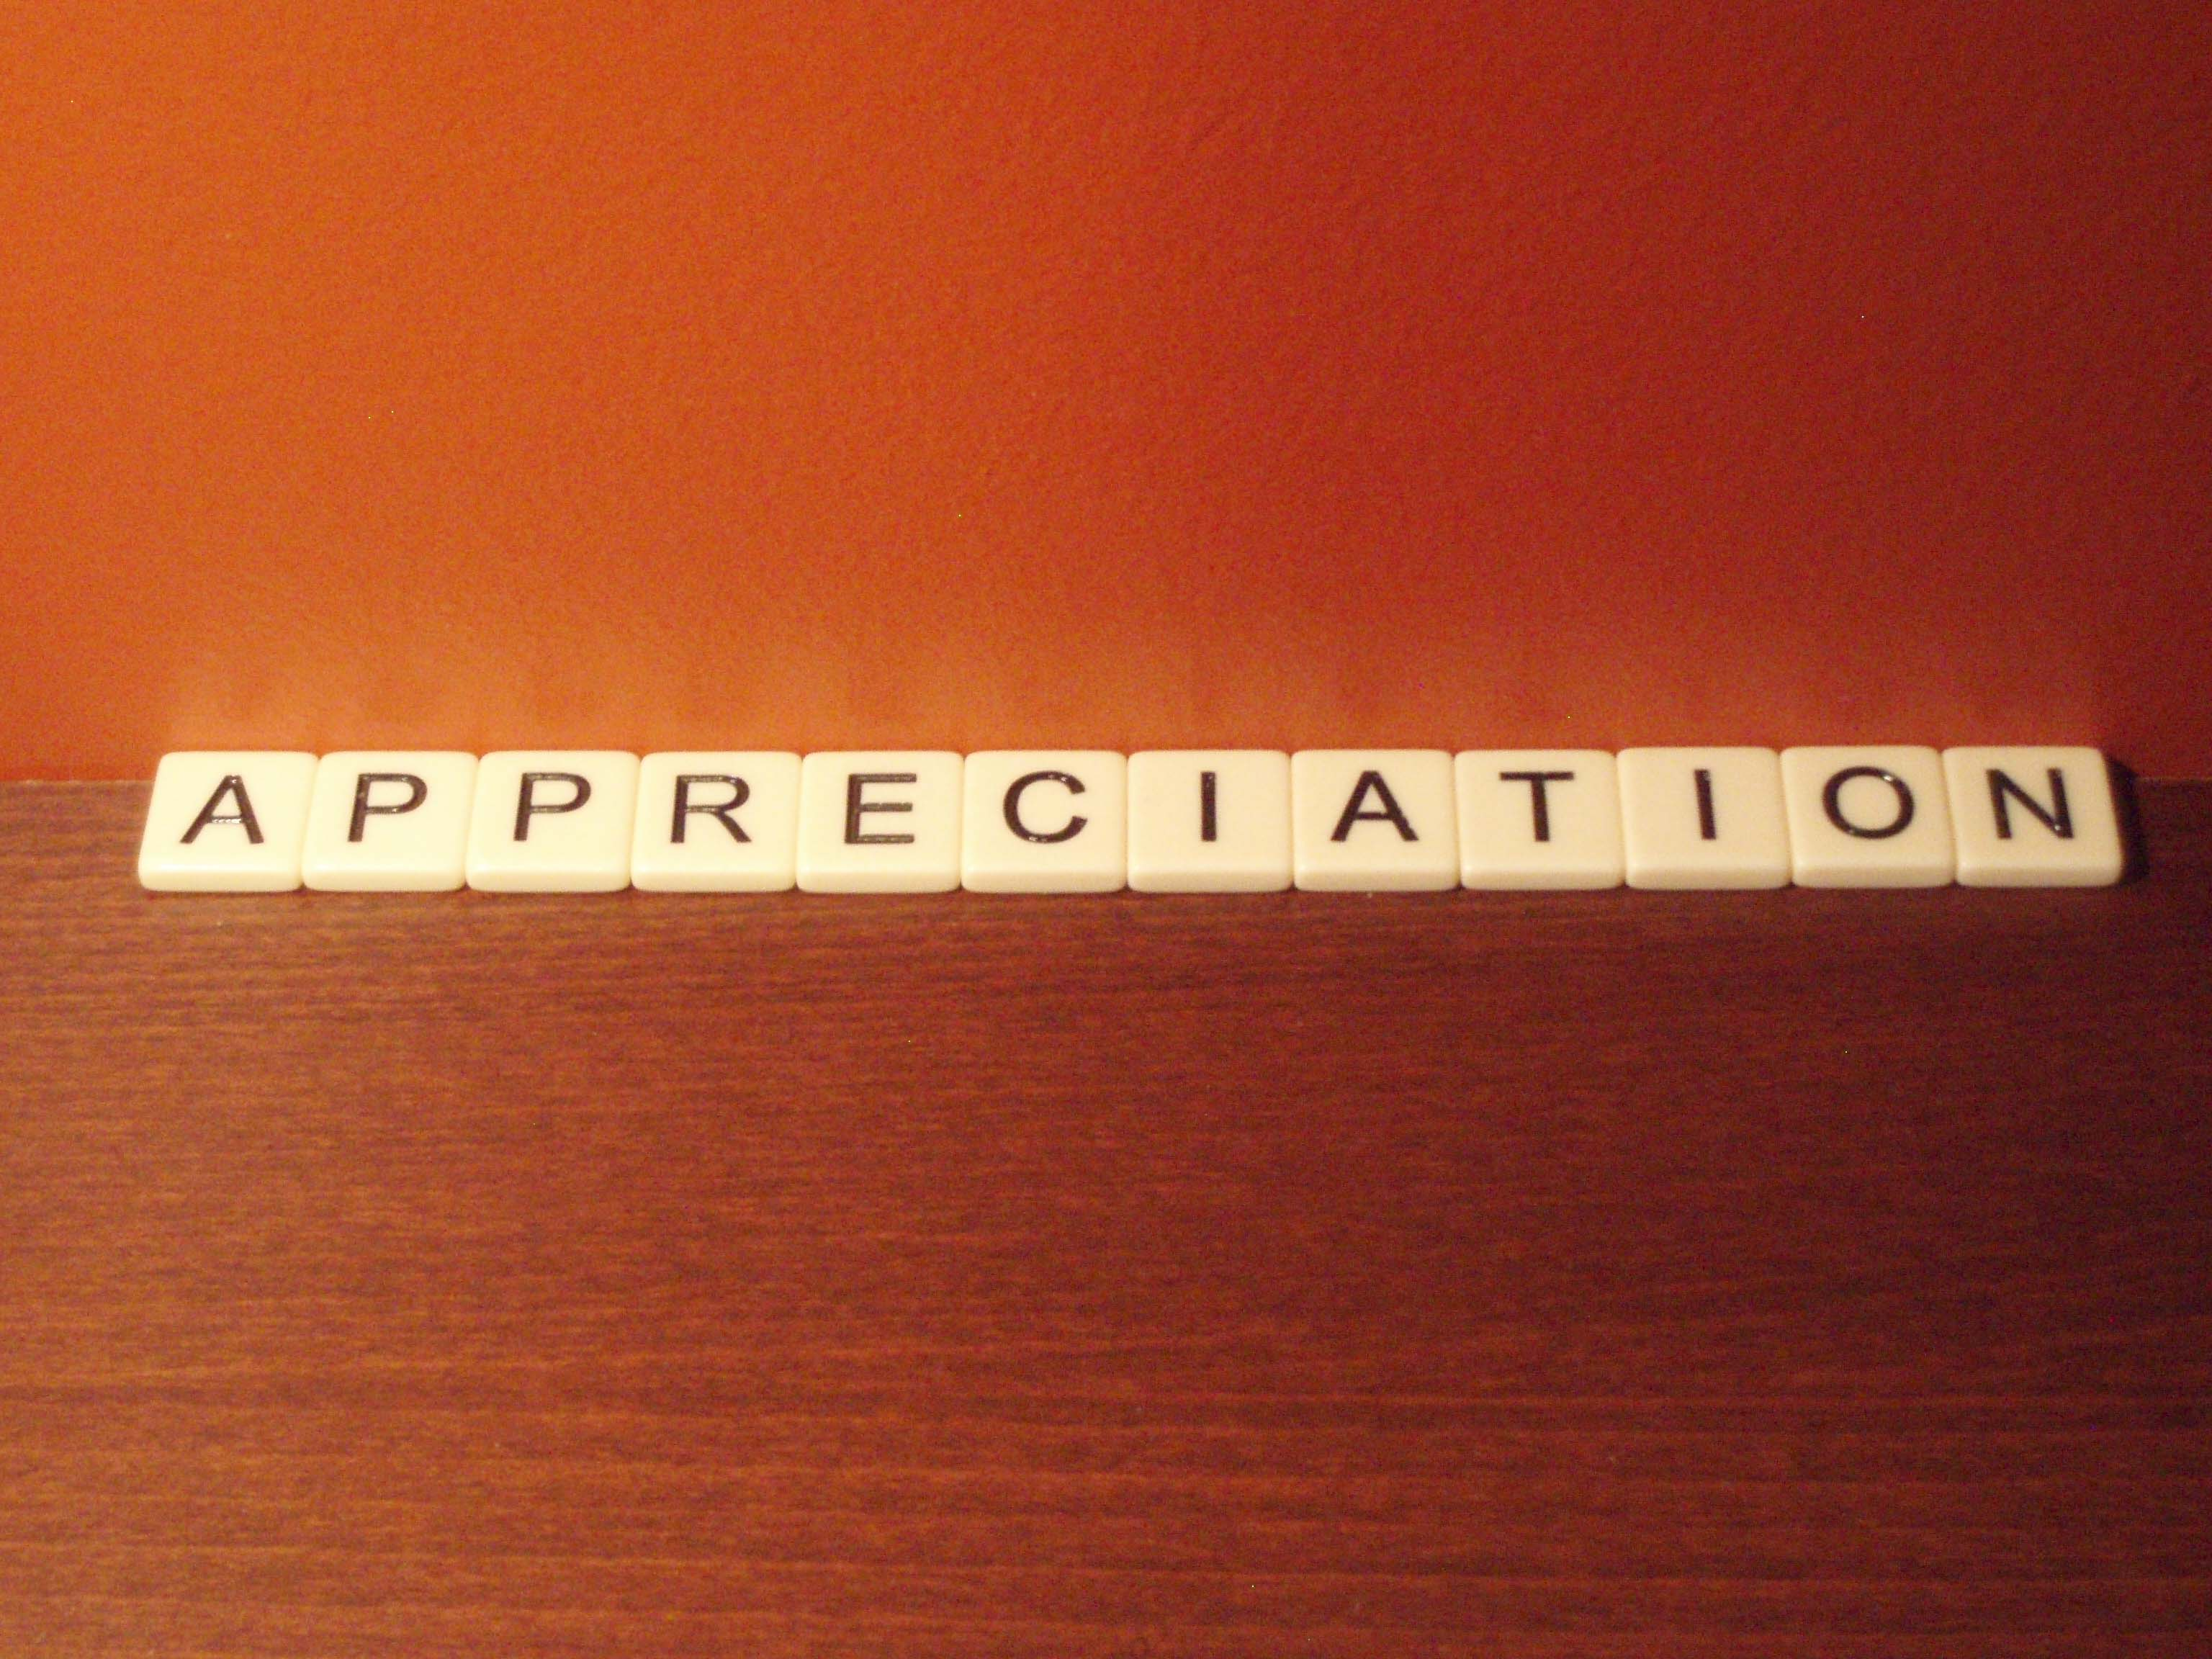 What is Appreciation? | Real Estate Definition